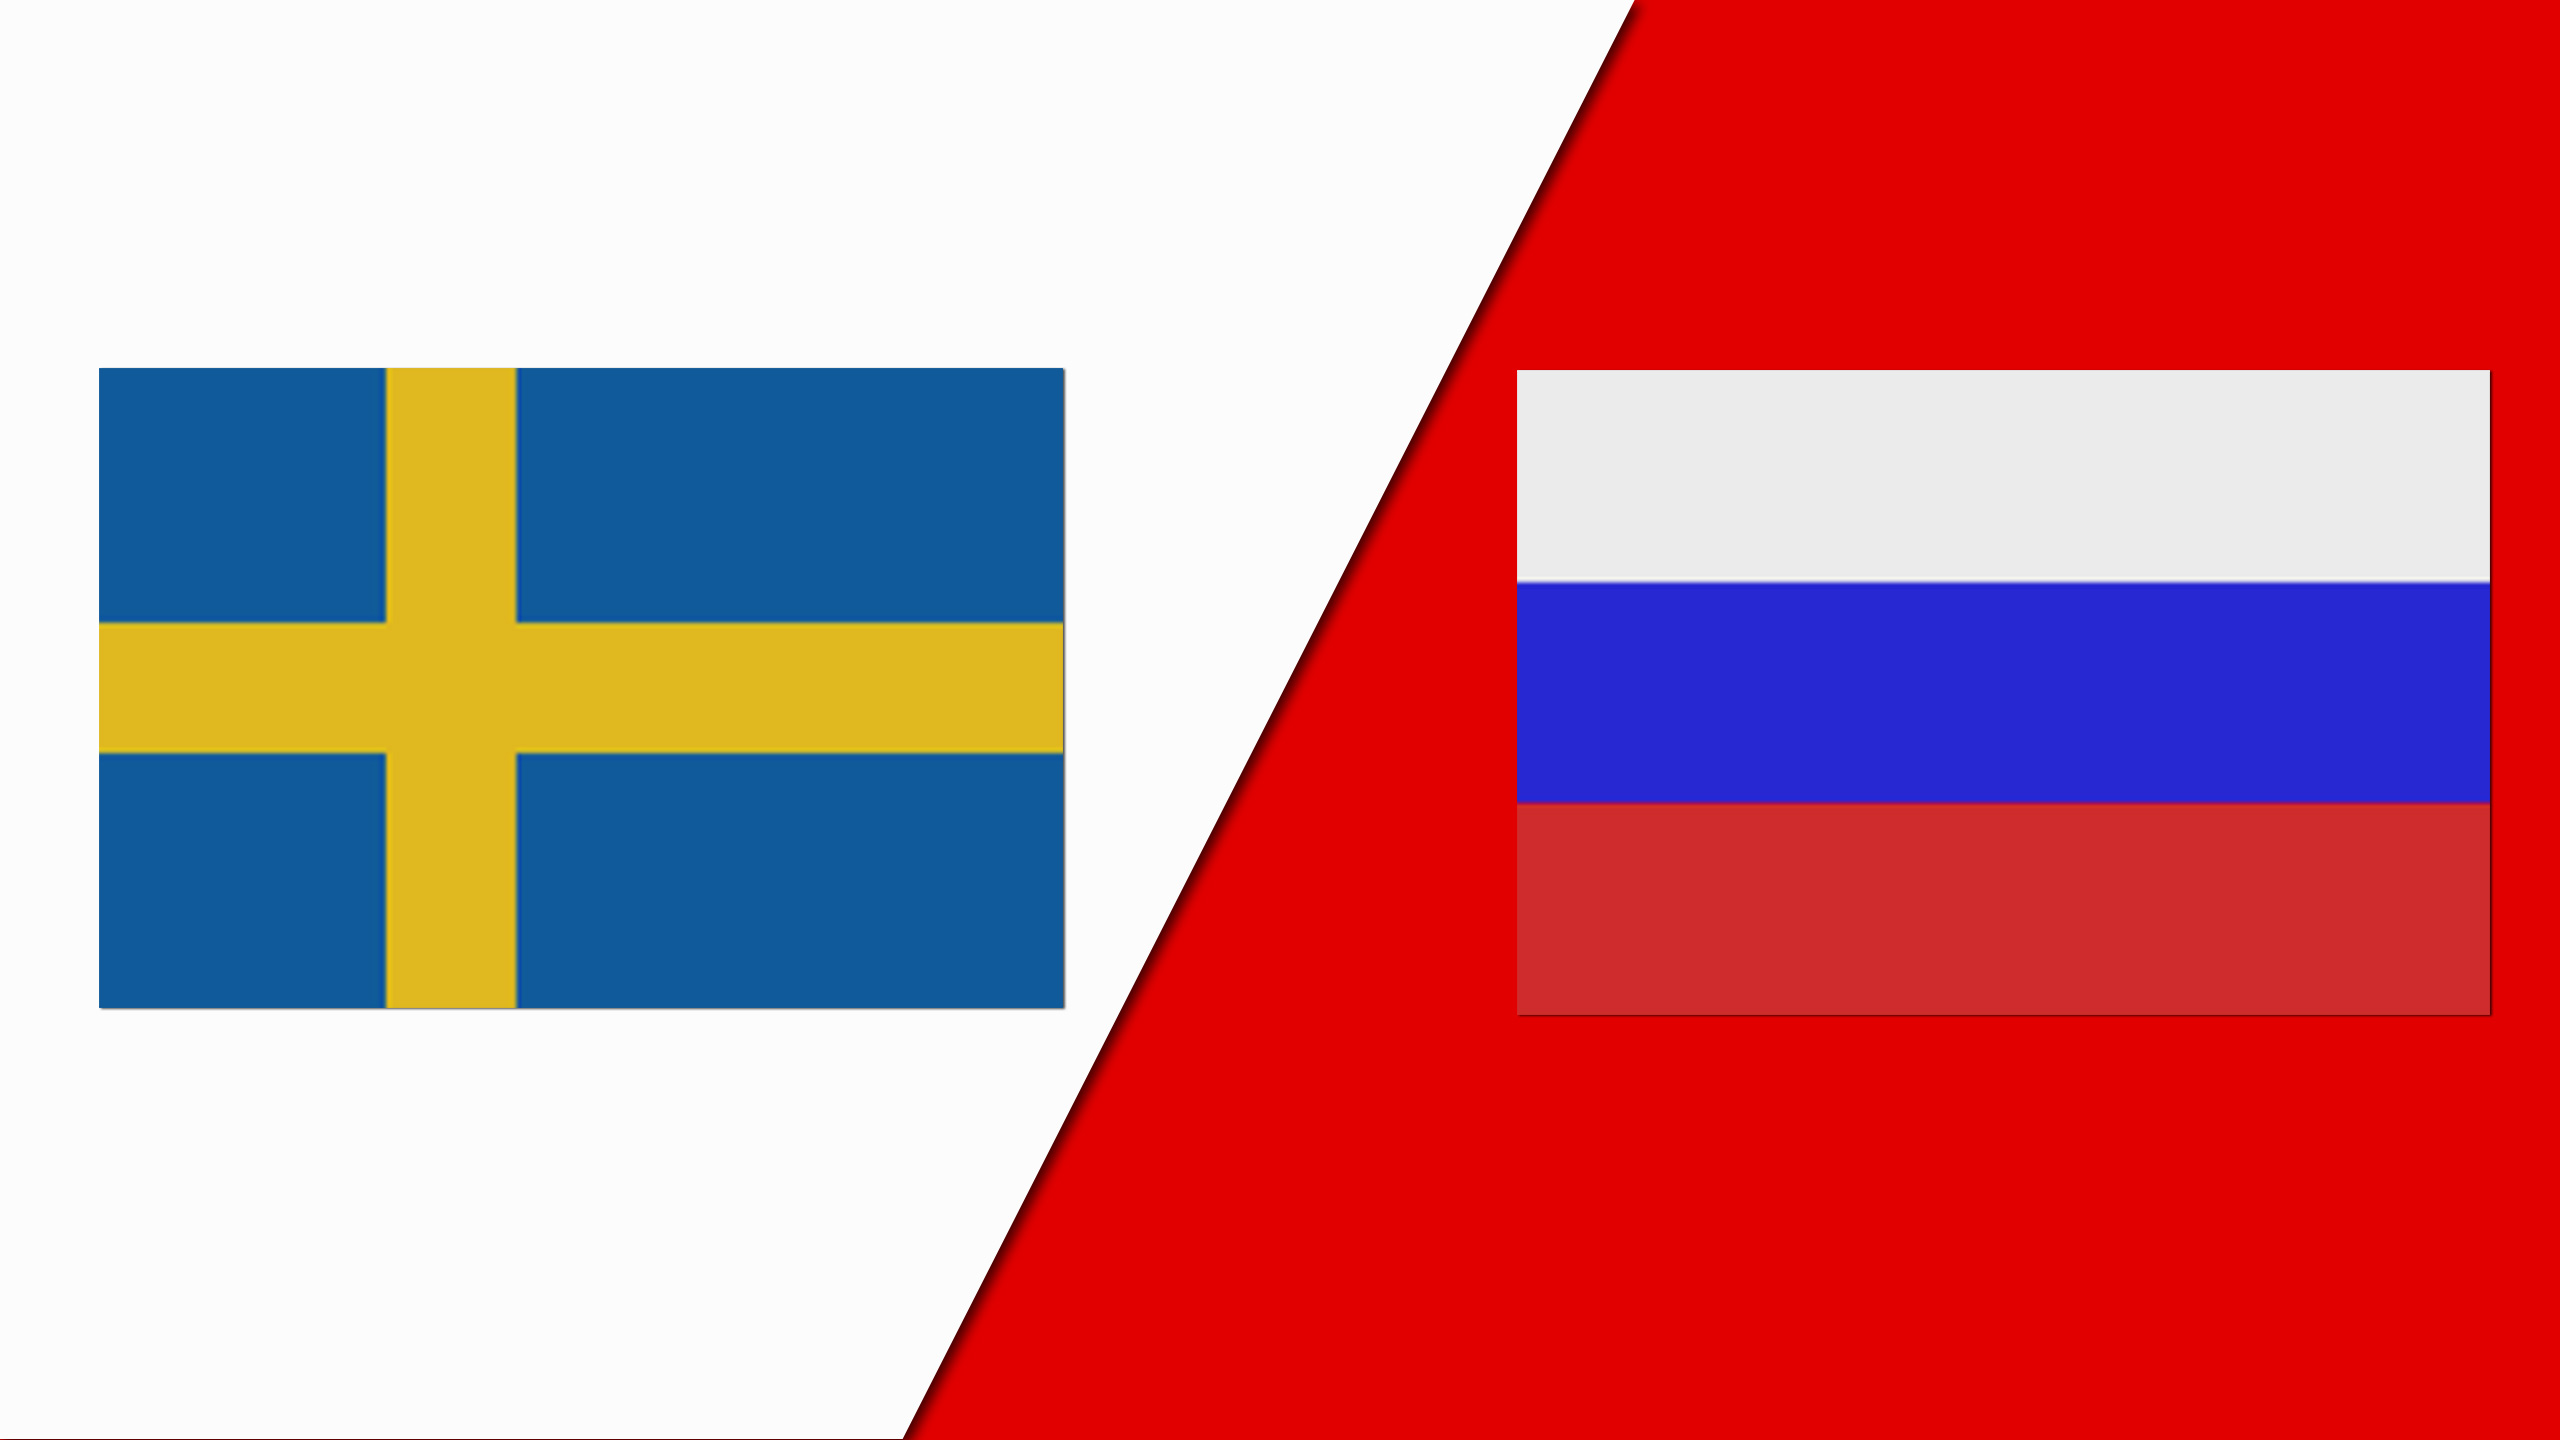 Sweden vs. Russia